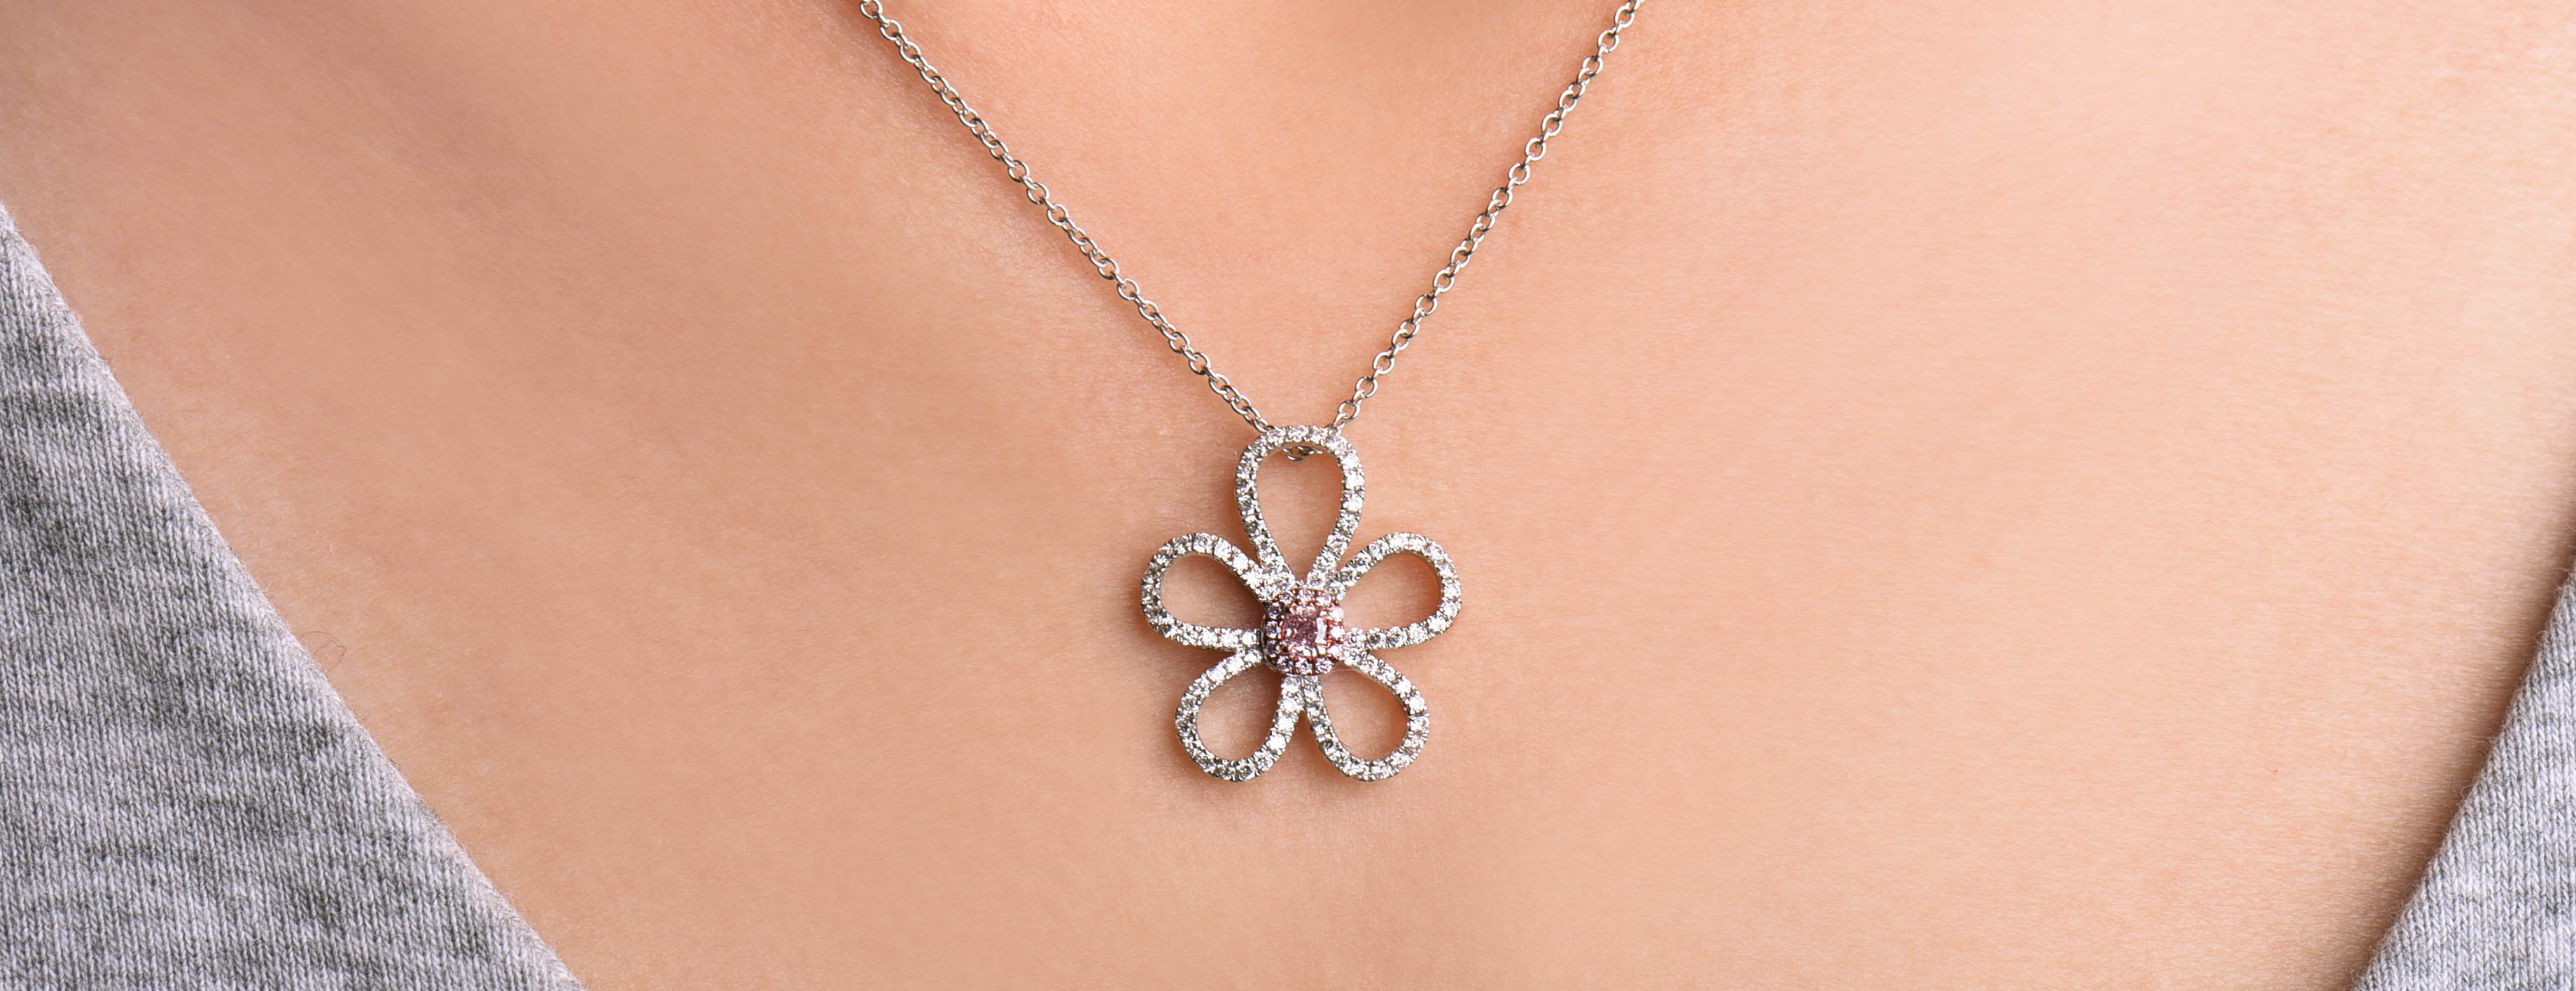 Astteria white and rose gold floral neckllace set with white and pink diamonds